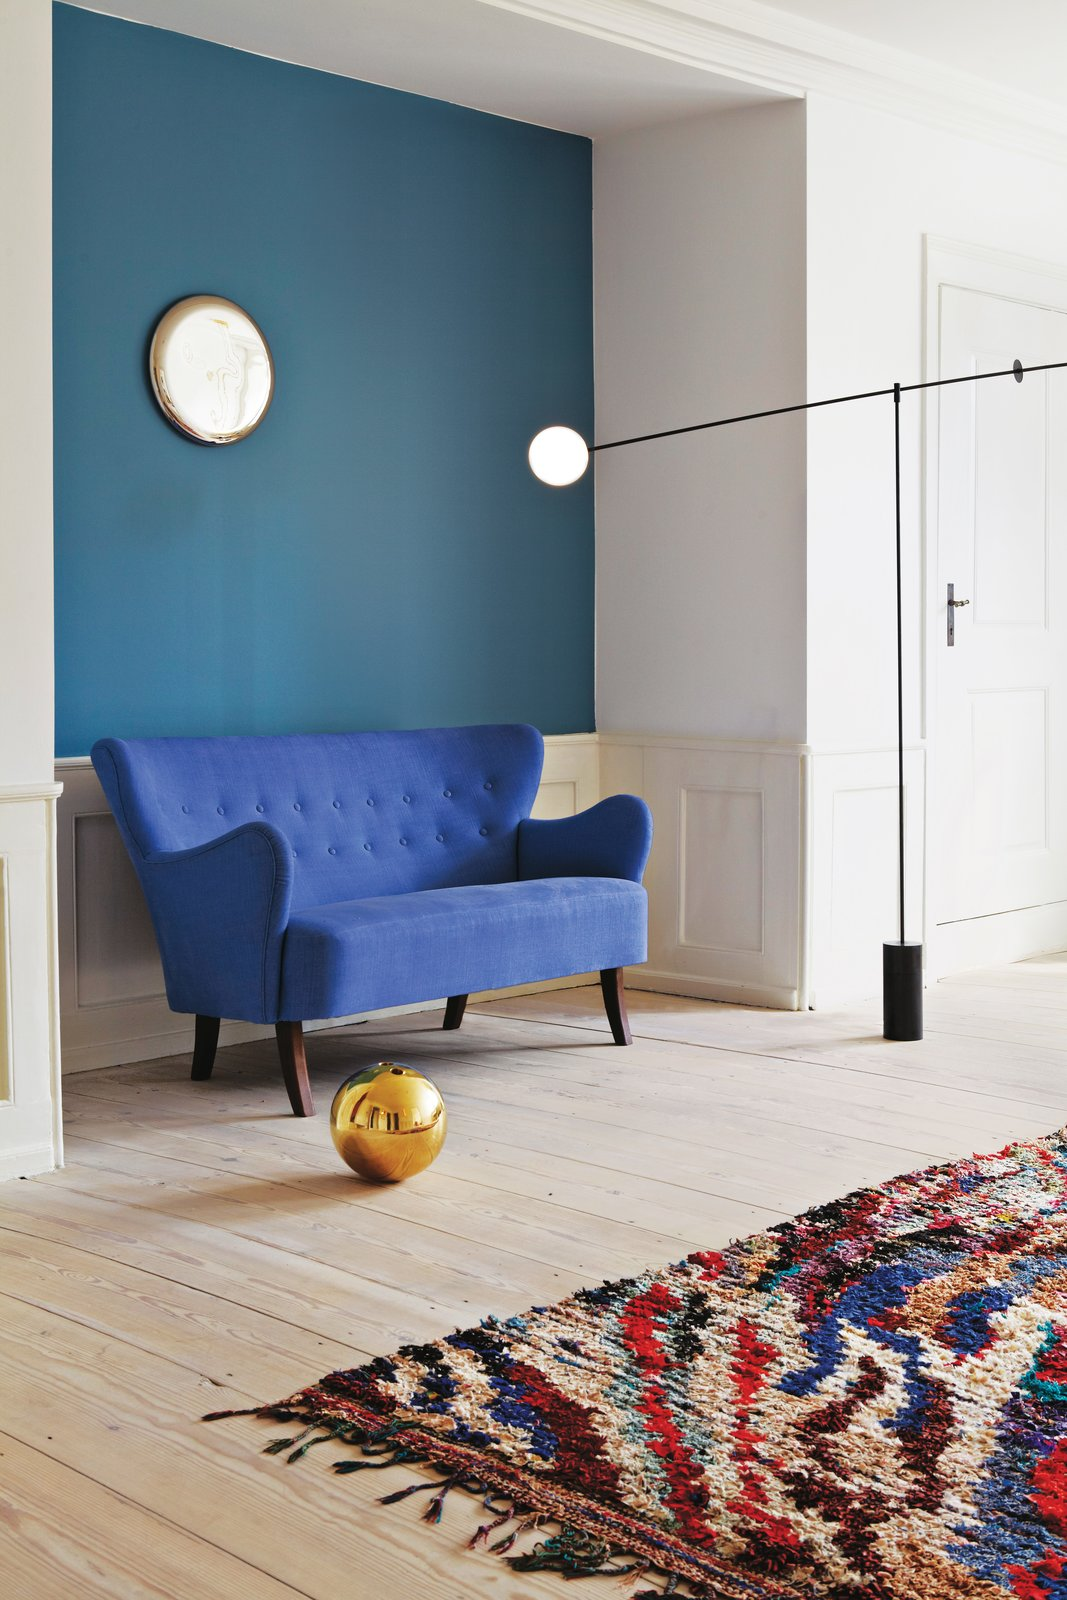 A Danish sofa, designer unknown, is set against an accent wall painted in Stone Blue by Farrow & Ball. As the local dealer for Anastassiades, the Apartment contains various pieces of his work, including the Mobile Chandelier 5 (2011), the Ball vase in cast brass (2006), and the wall-mounted Beauty Mirror (2010). The vintage Boucherouite rug is from Morocco. Photos courtesy the Apartment. 100+ Best Modern Seating Designs by Dwell